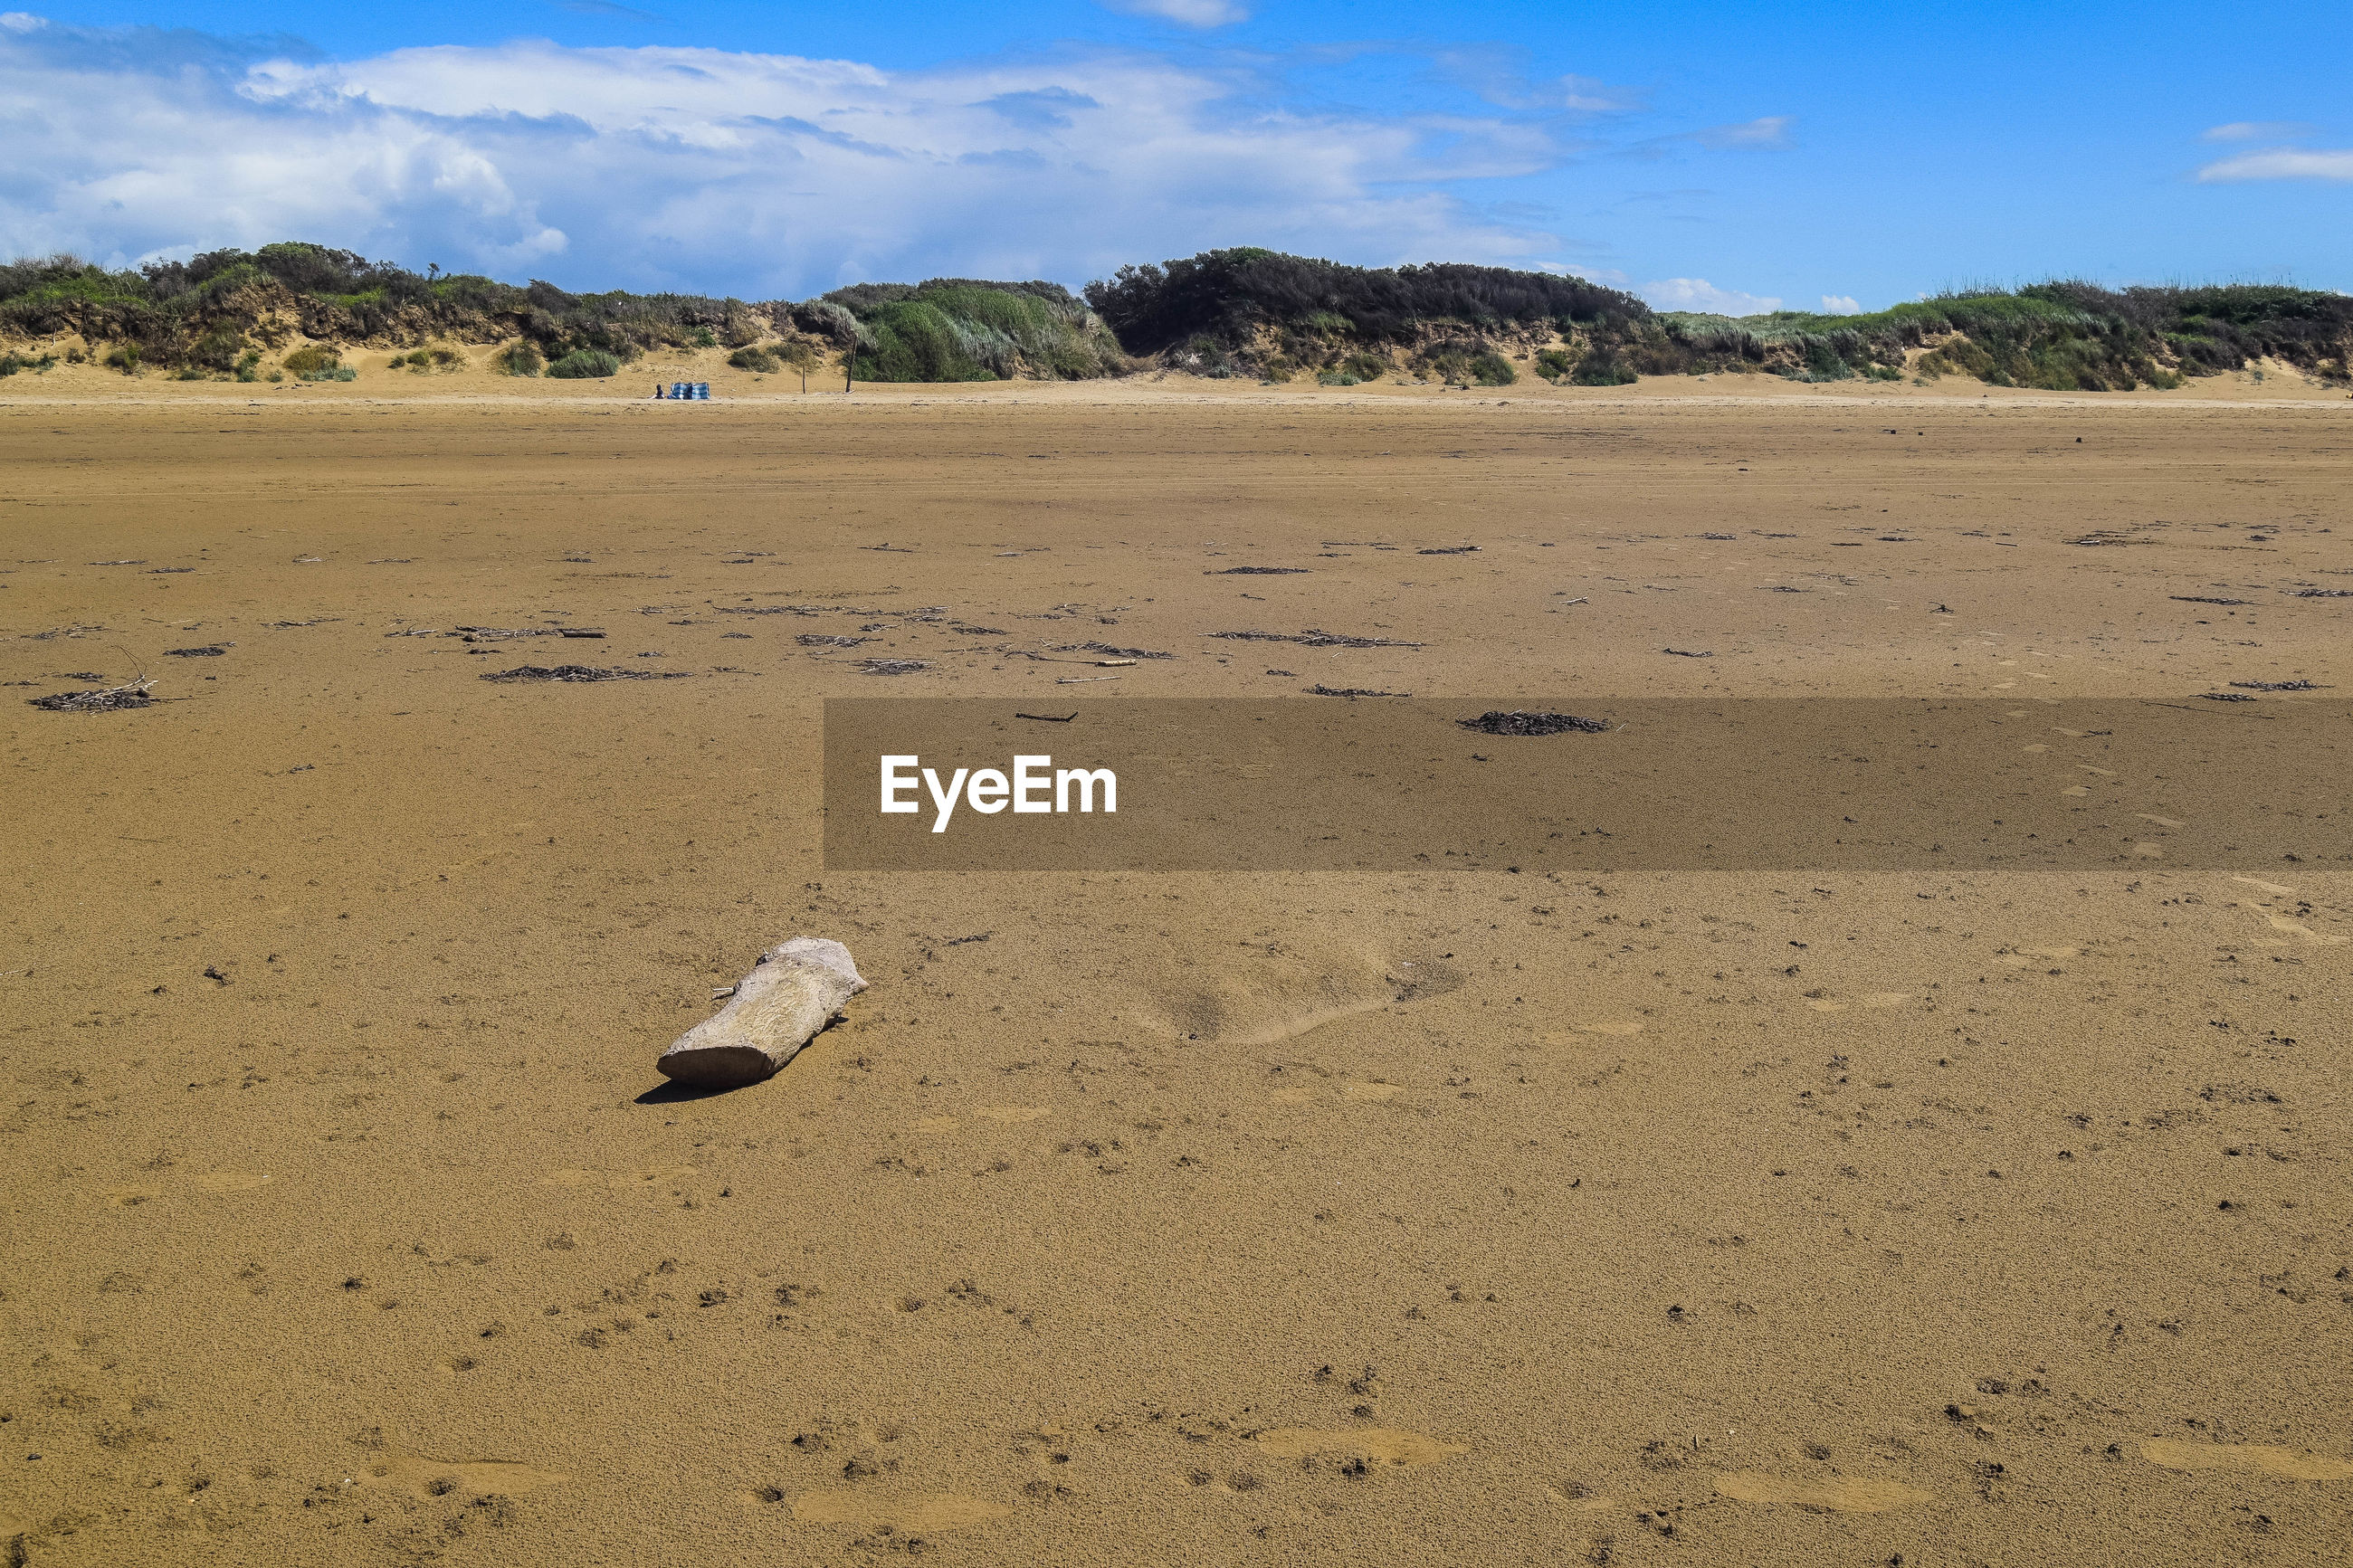 View of flotsam  and jetsom on beach